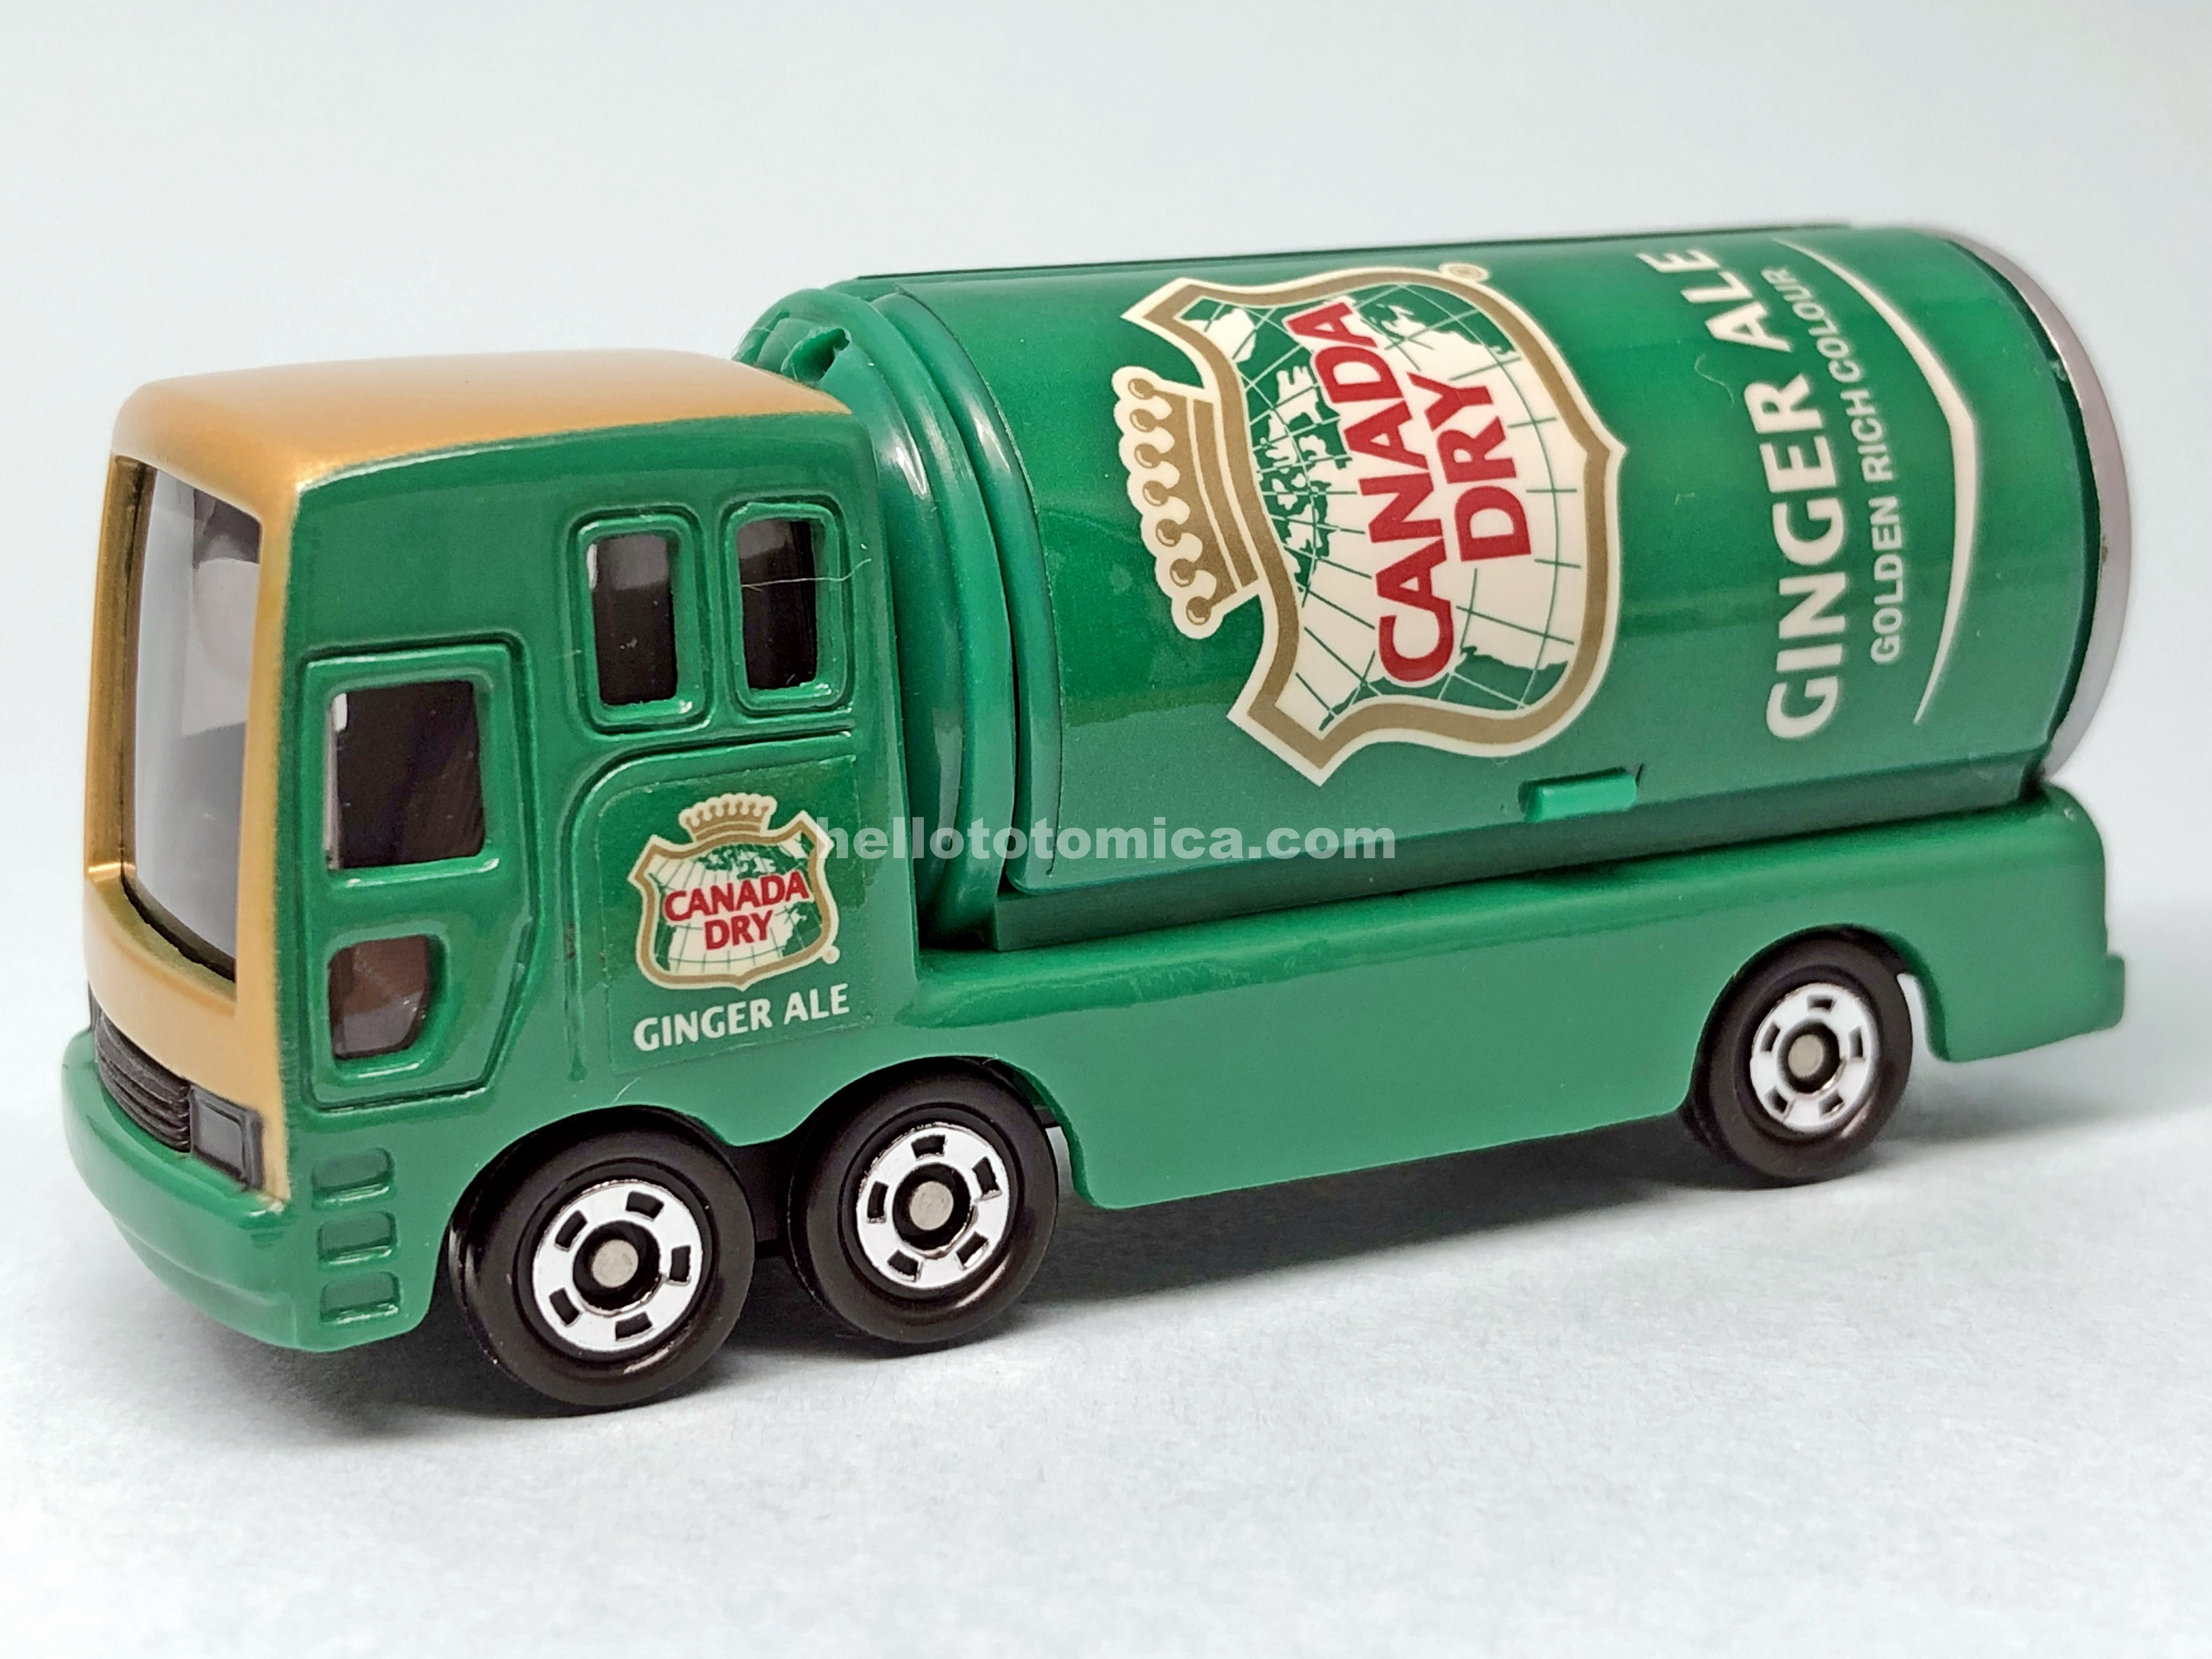 37-4 CANADA DRY EVENT TRUCK